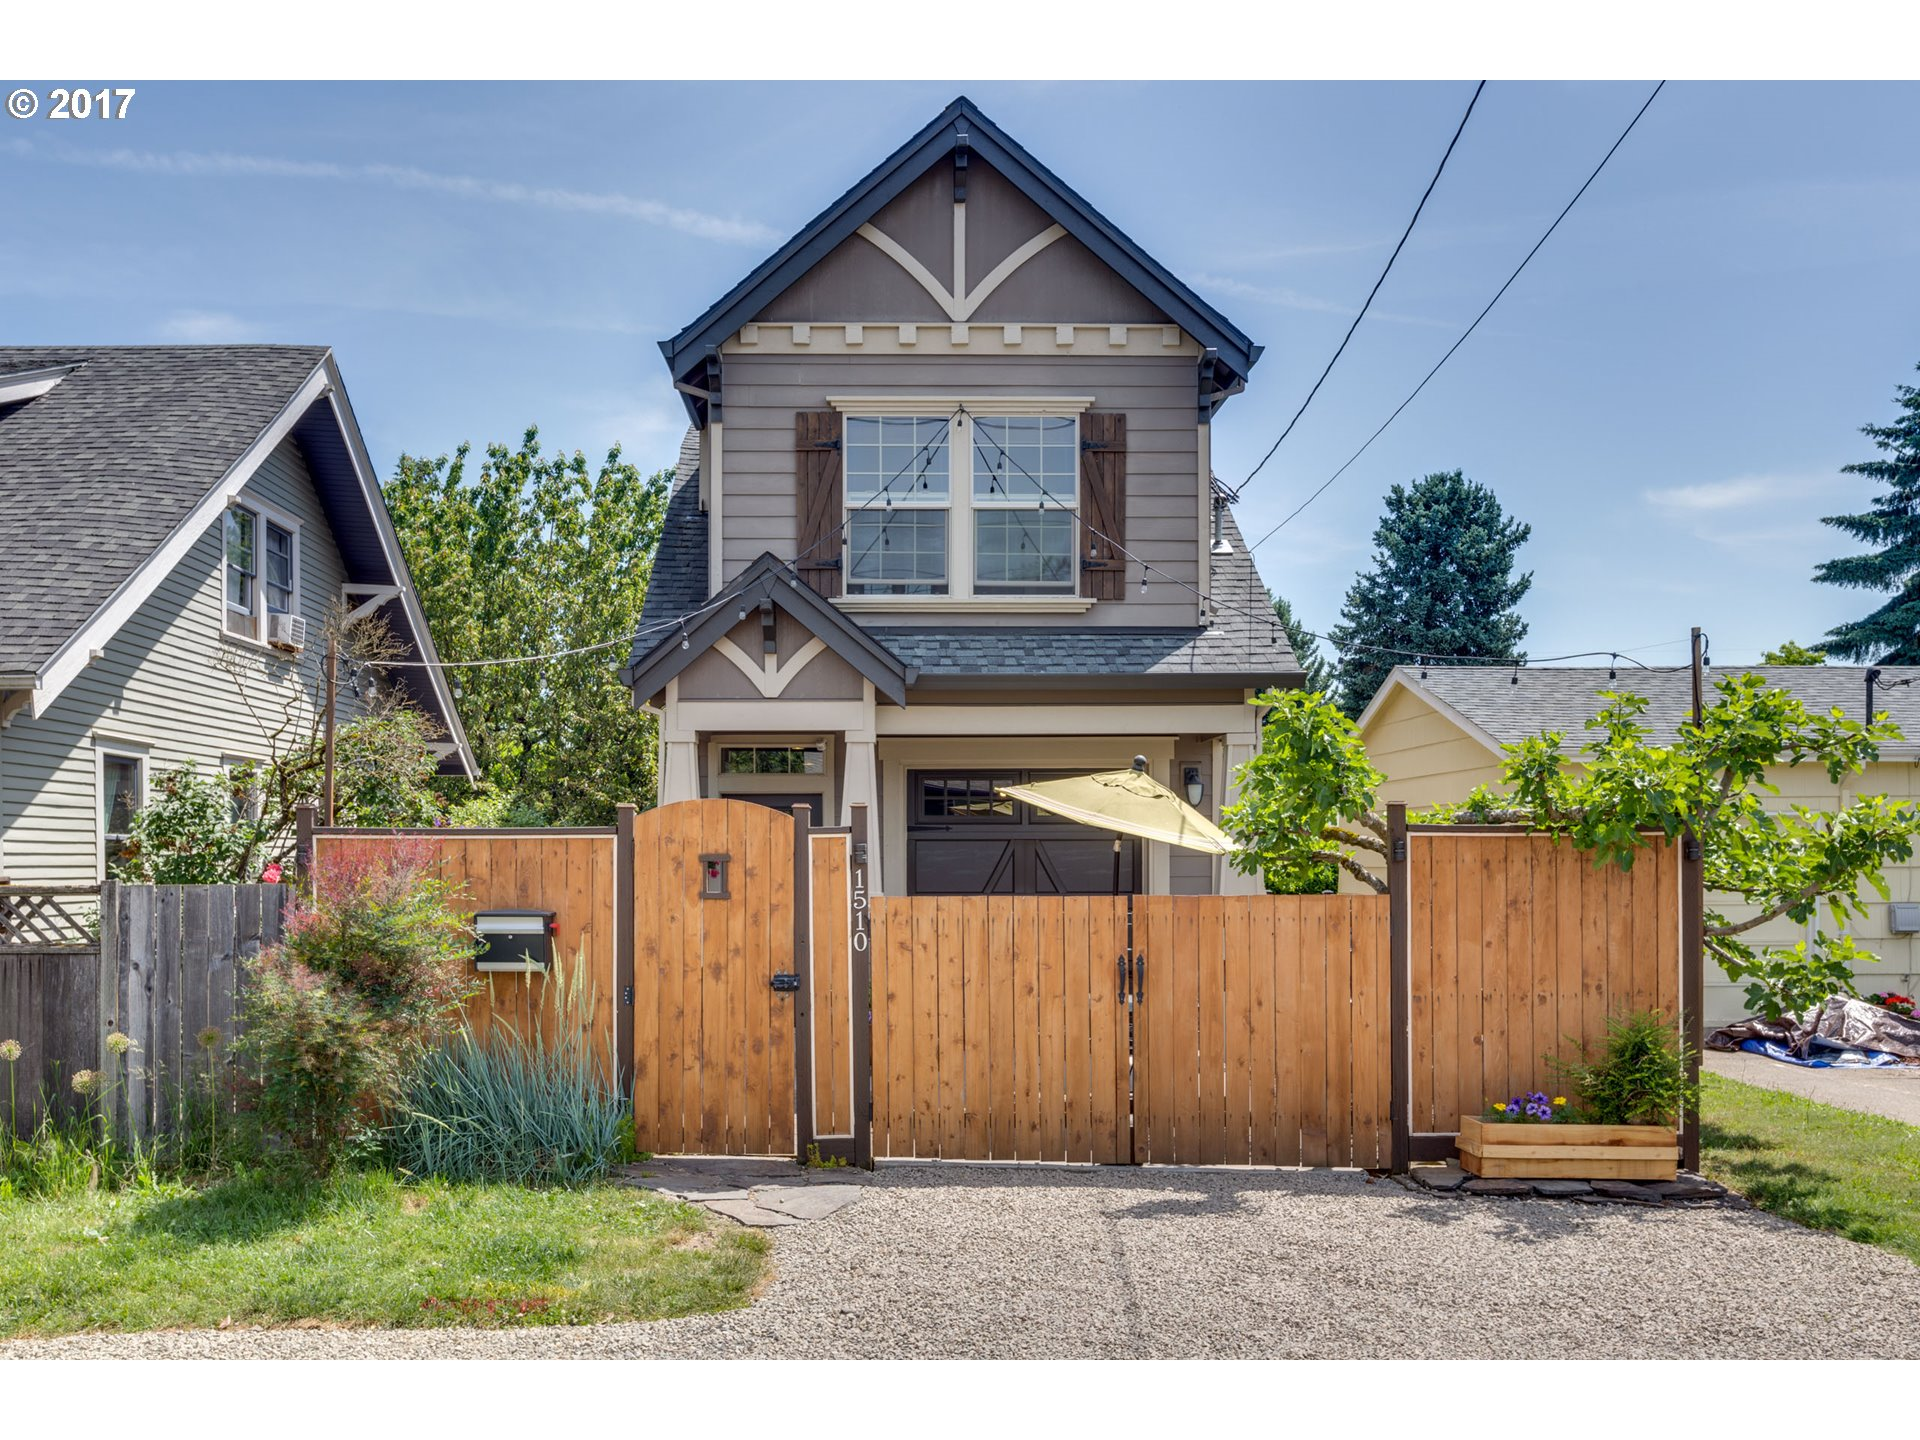 1627 sq. ft 3 bedrooms 2 bathrooms  House For Sale,Portland, OR